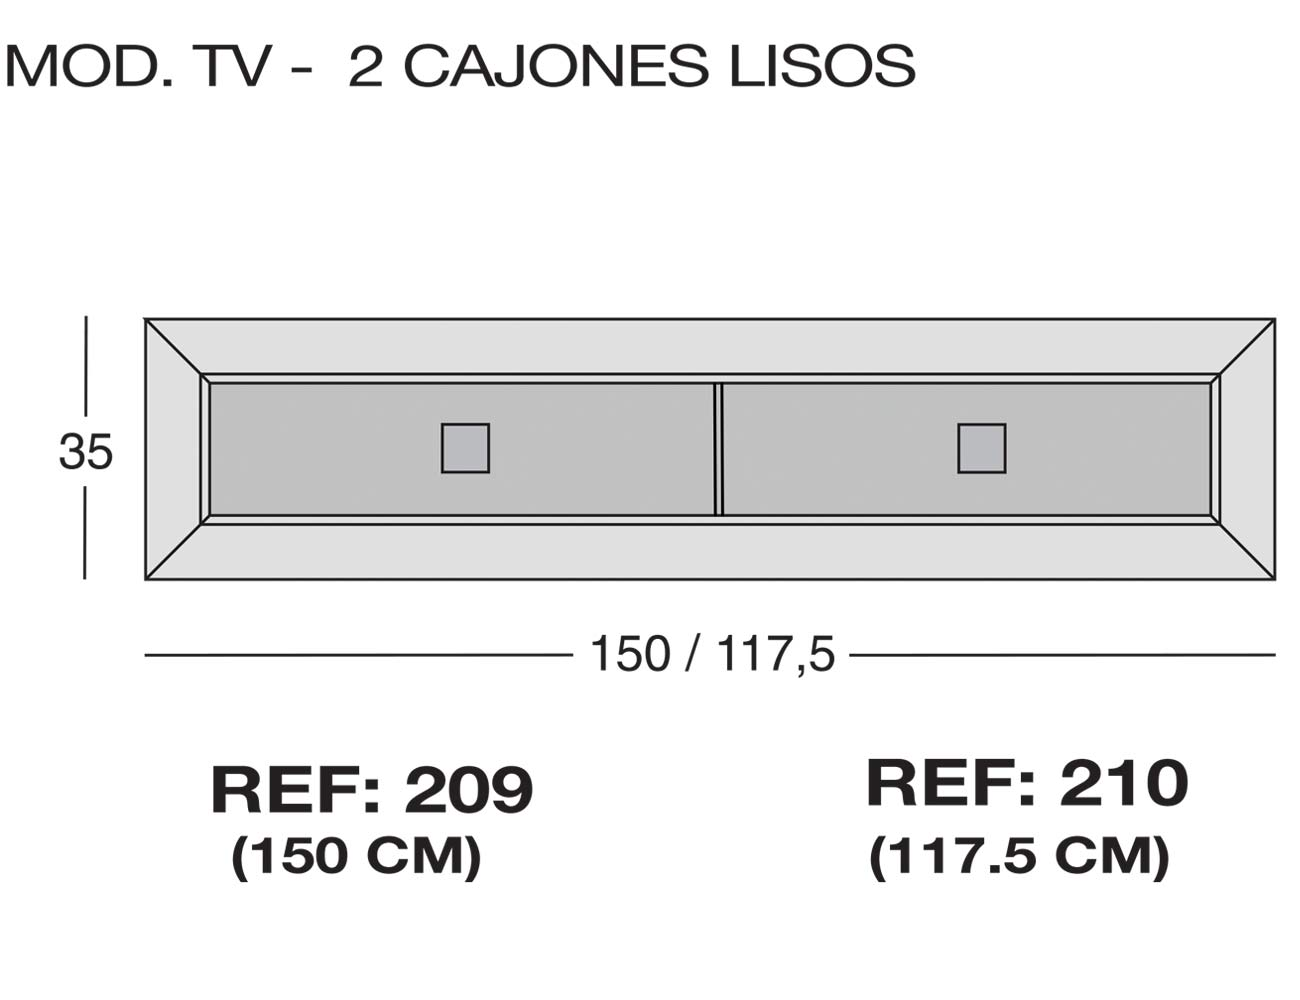 Modulo tv 2c lisos 209 210